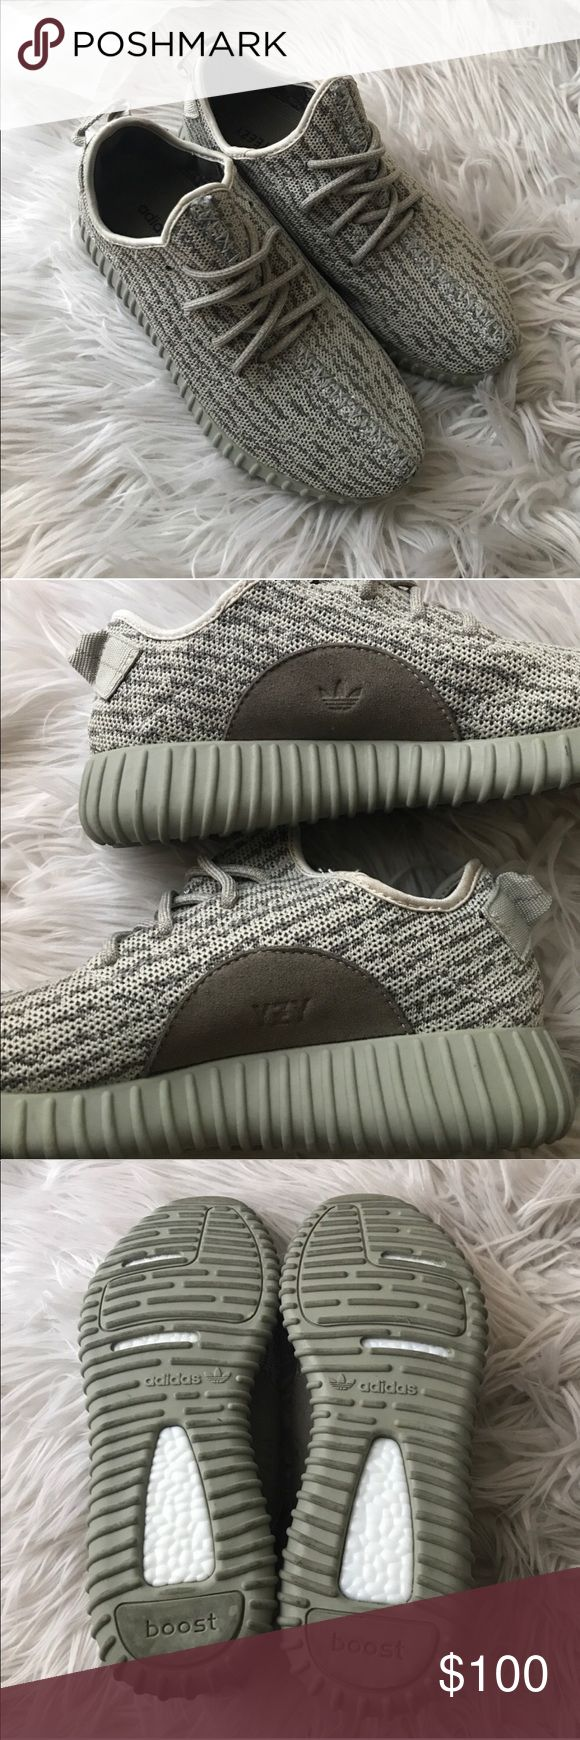 Adidas Yeezy Boost Price reflects authenticity. Very clean  comfy. adidas Shoes Athletic Shoes